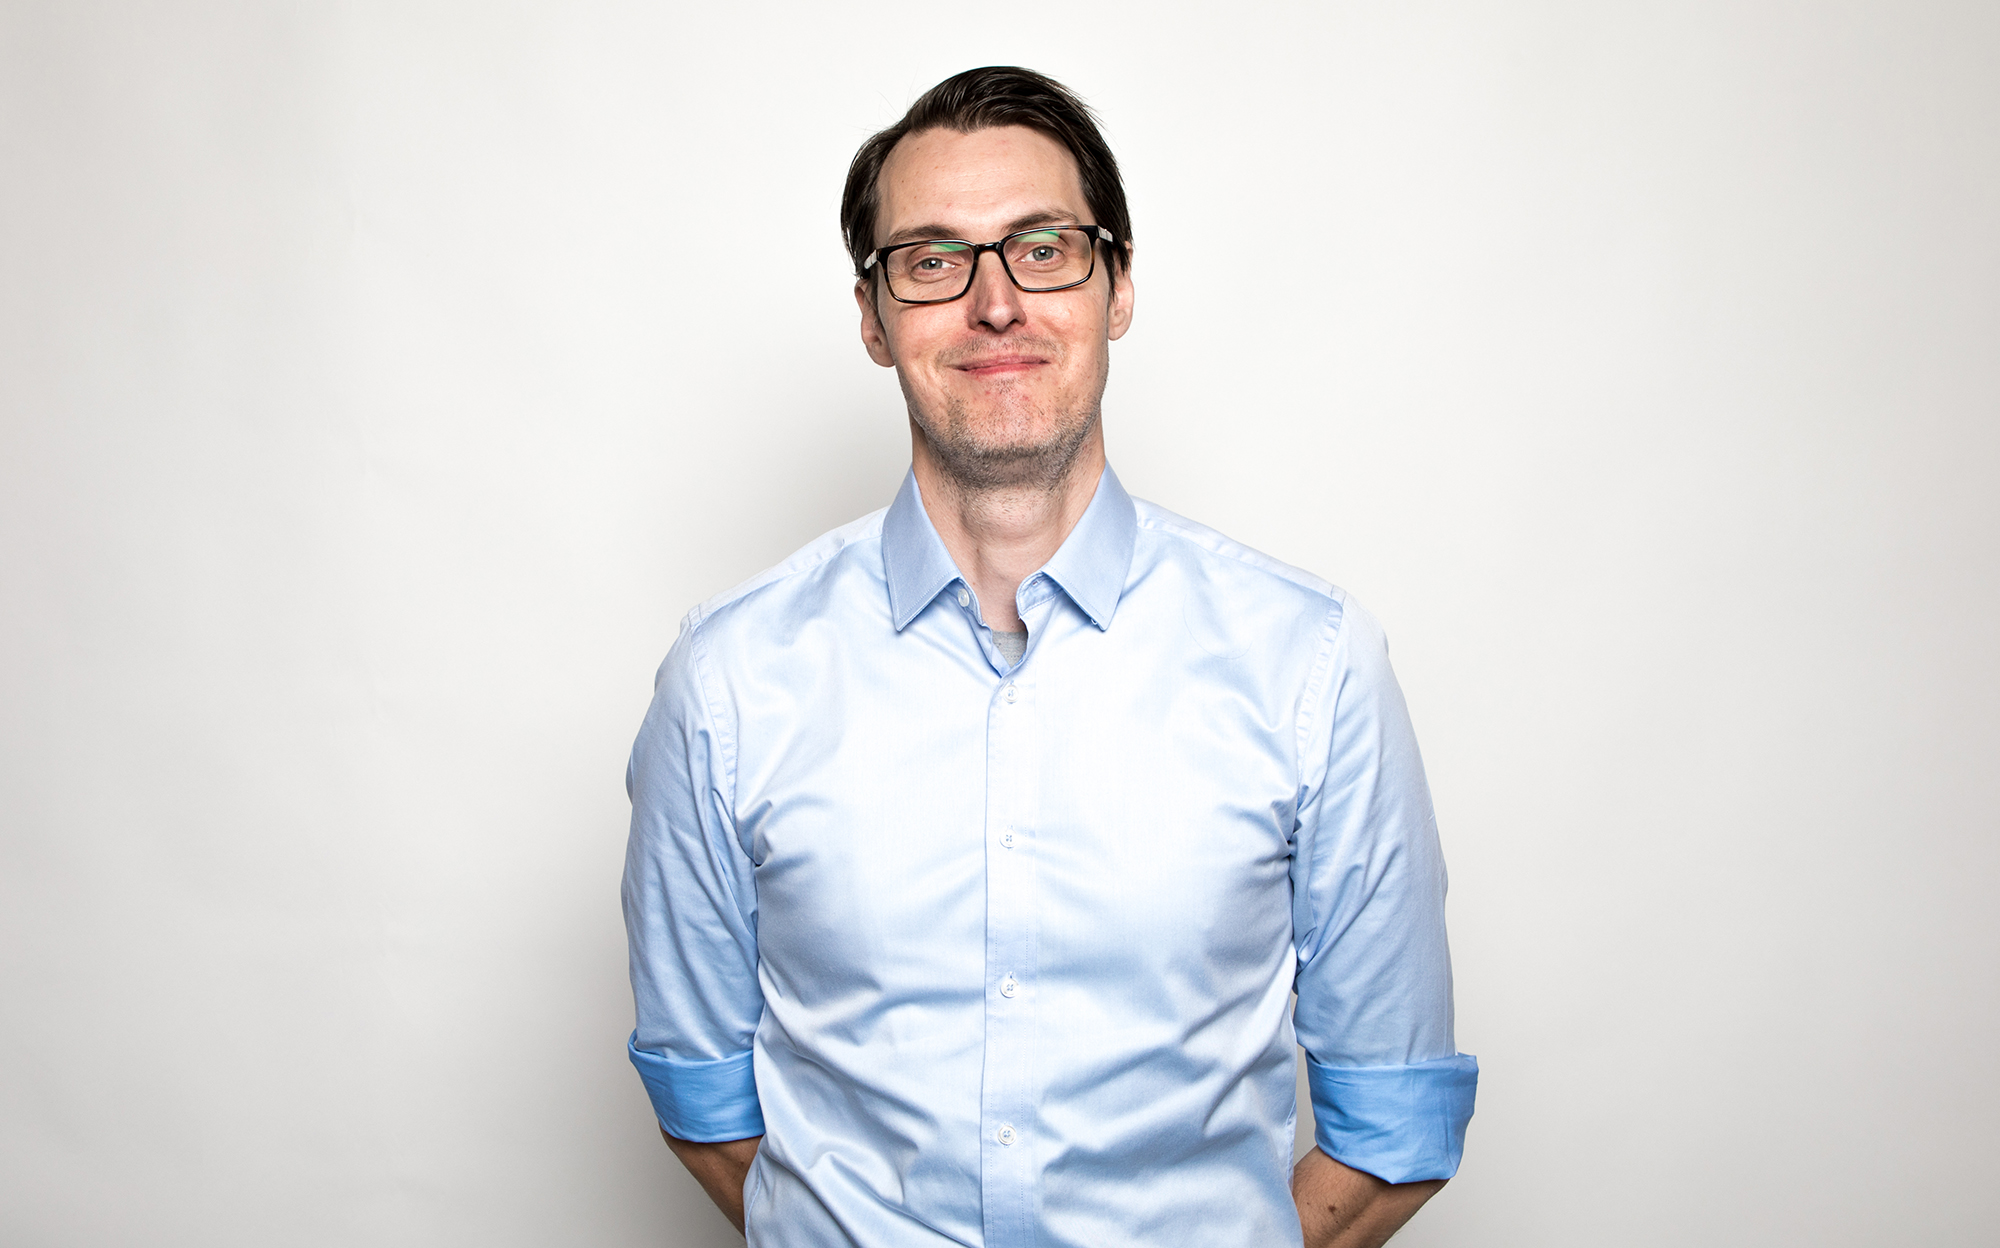 WiTH Collective rebrands as Isobar Australia; Erik Hallander to lead integration of the two brands